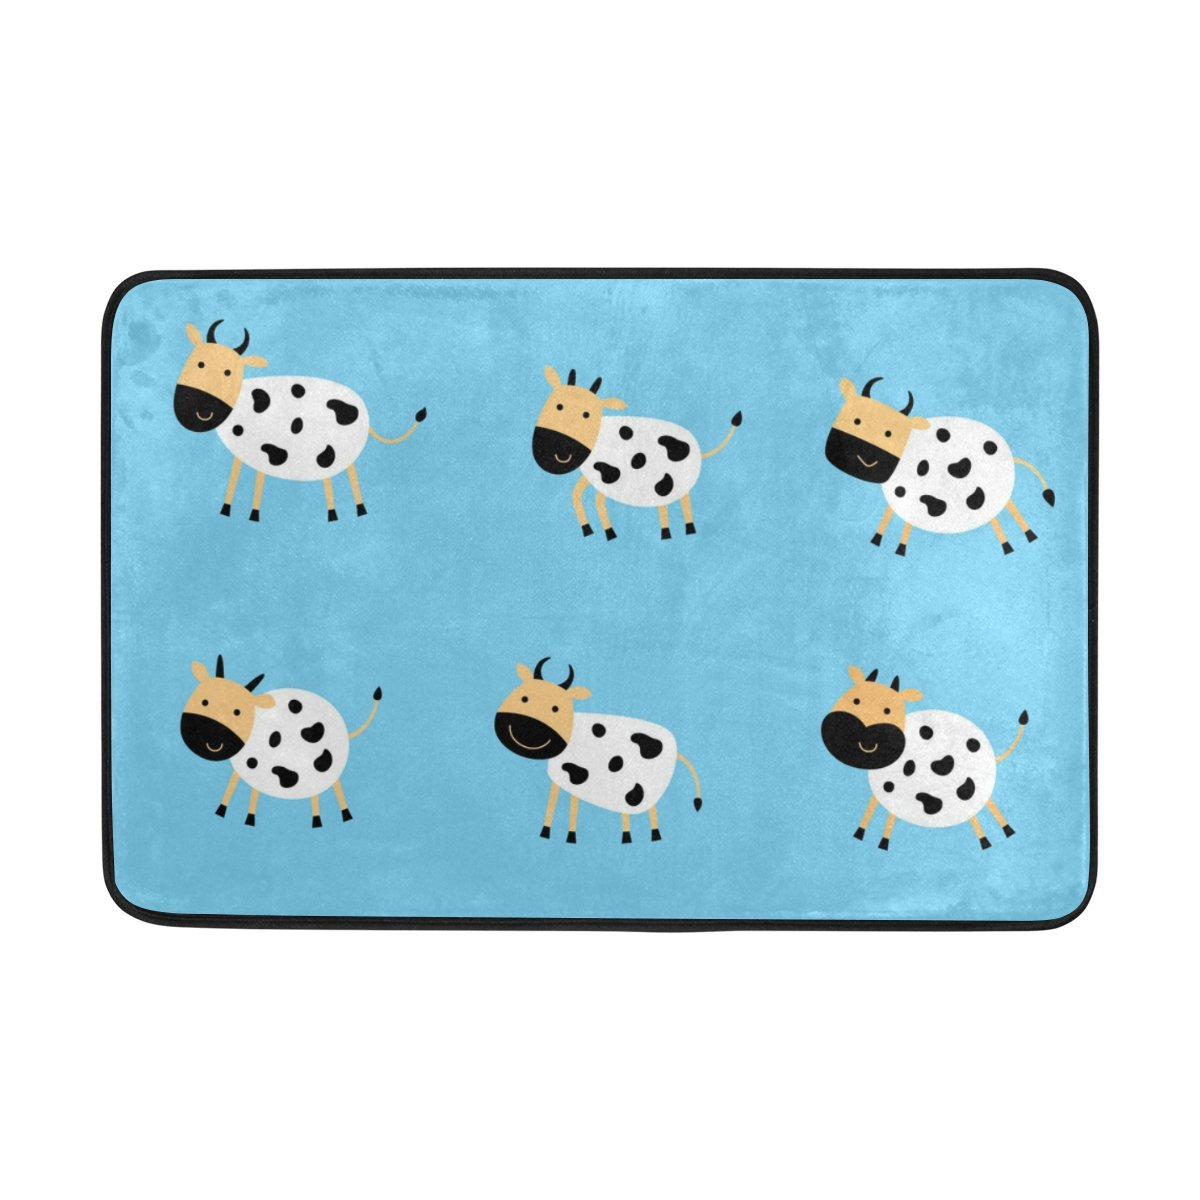 Leche vaca Cartoon azul alfombra moqueta animal print